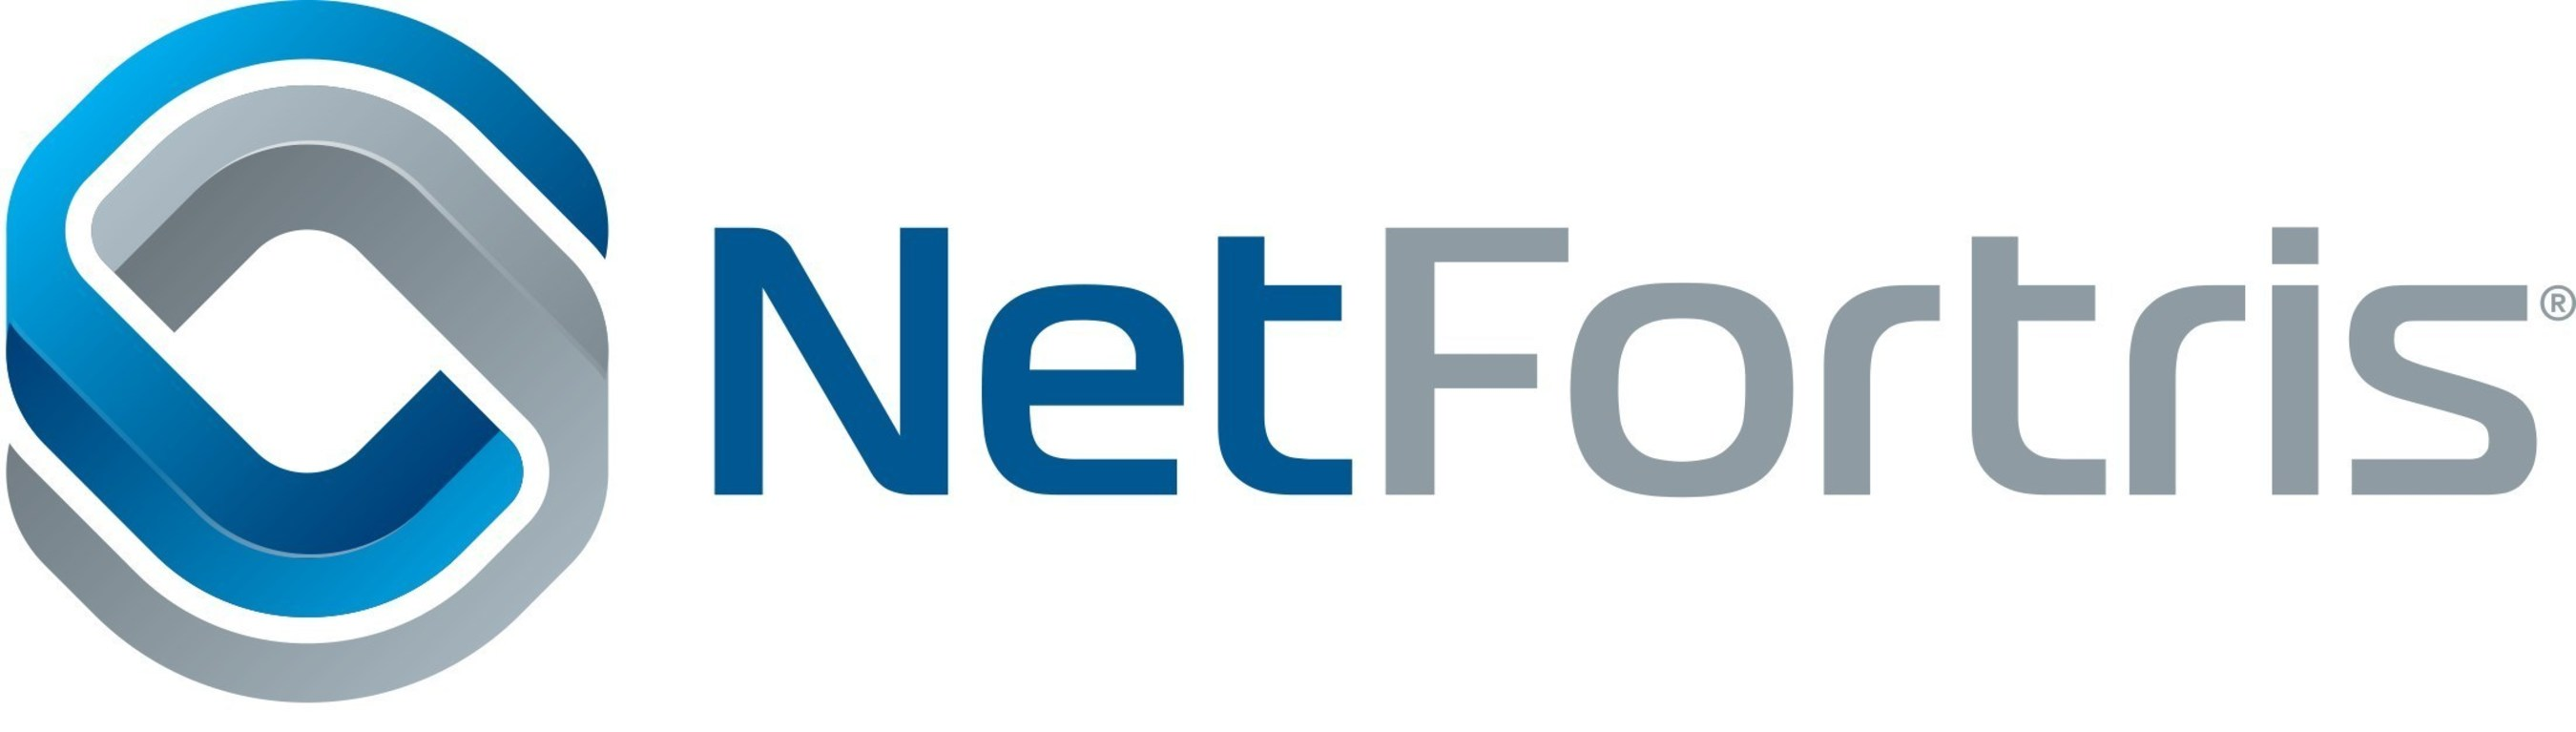 NetFortris' Upgrades Capacity, Security and Reliability Across its Carrier-Grade Private Network